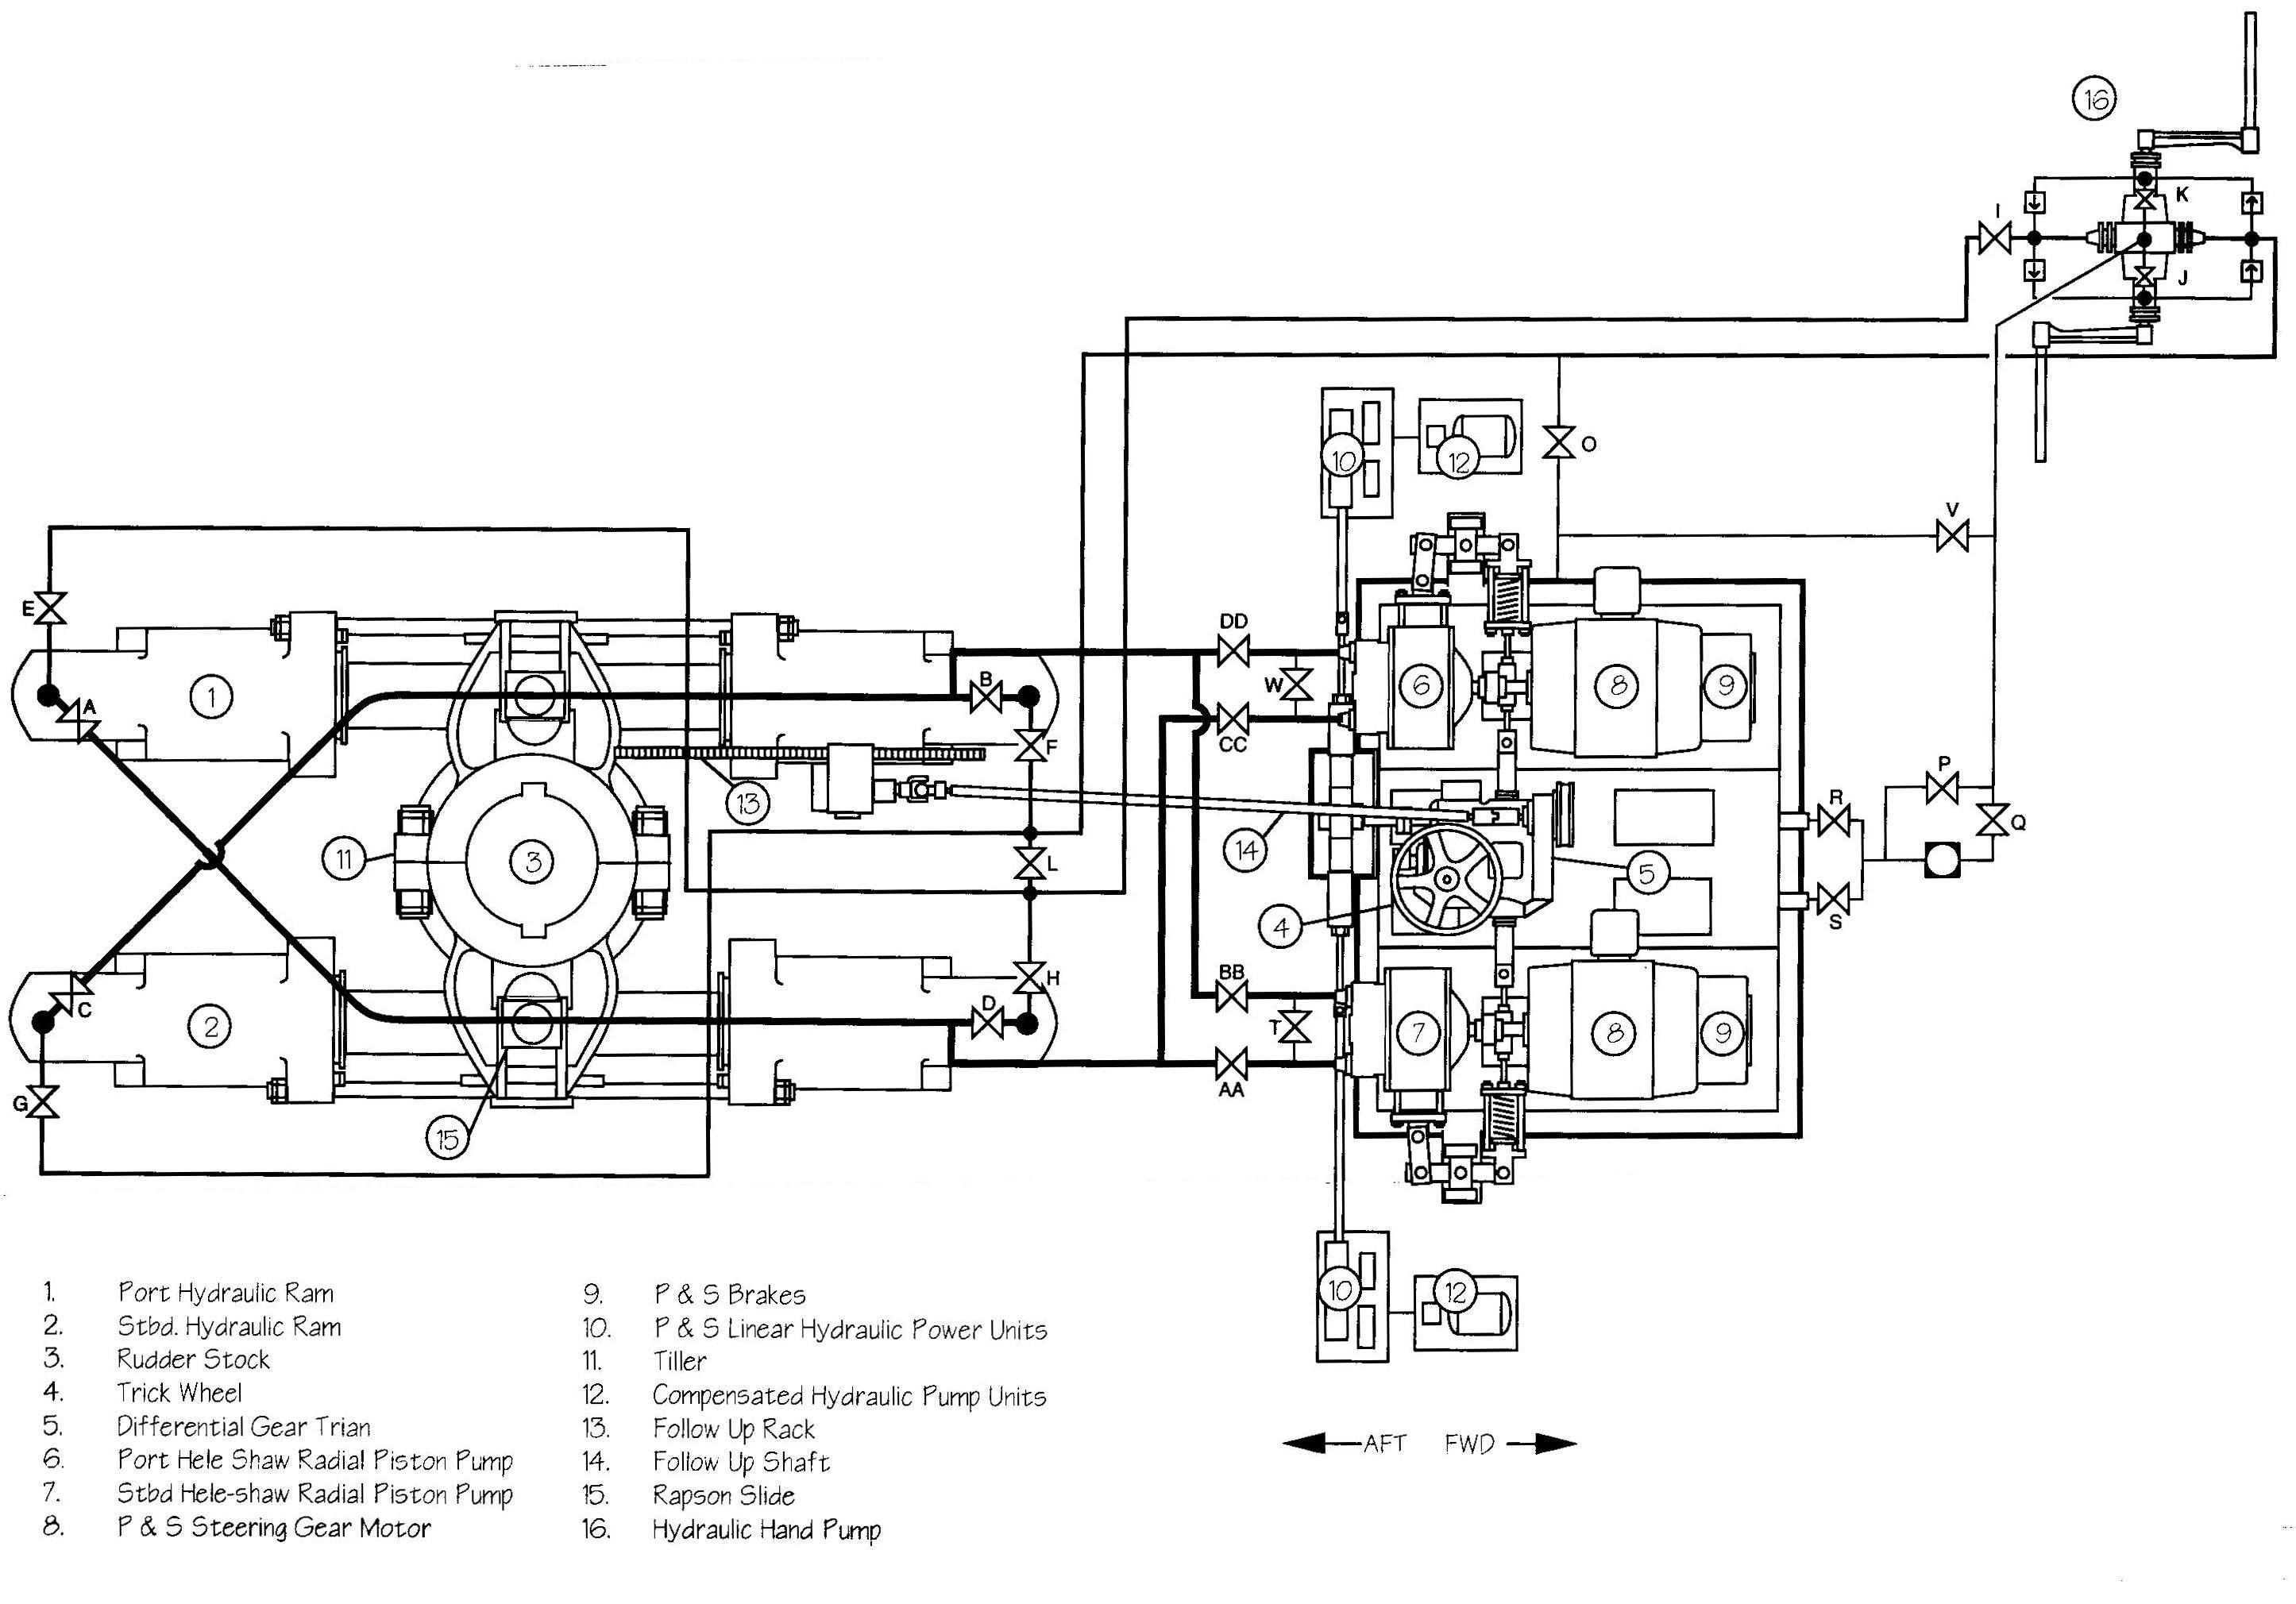 Hydraulic Pump Diagram